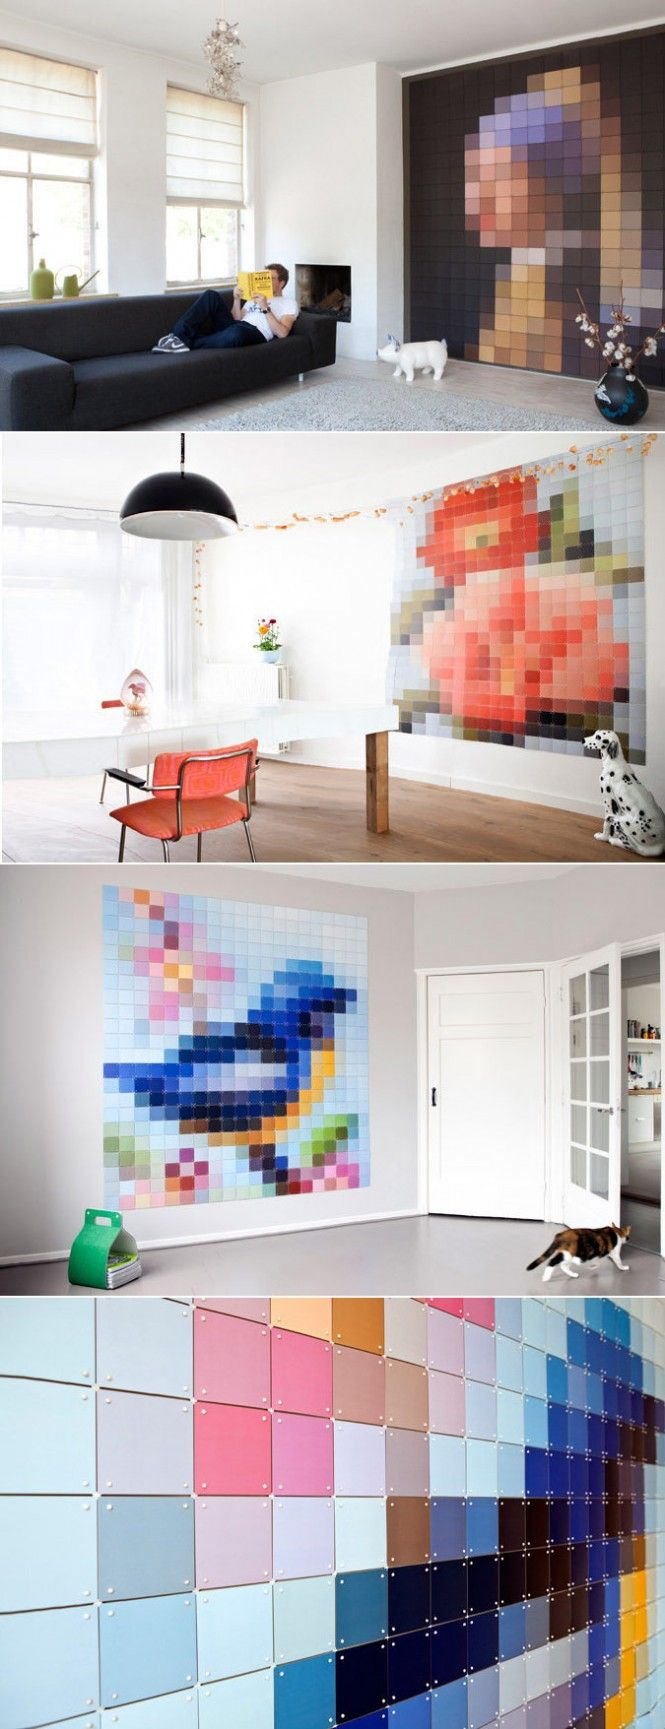 Pixel Inspiration in Decor